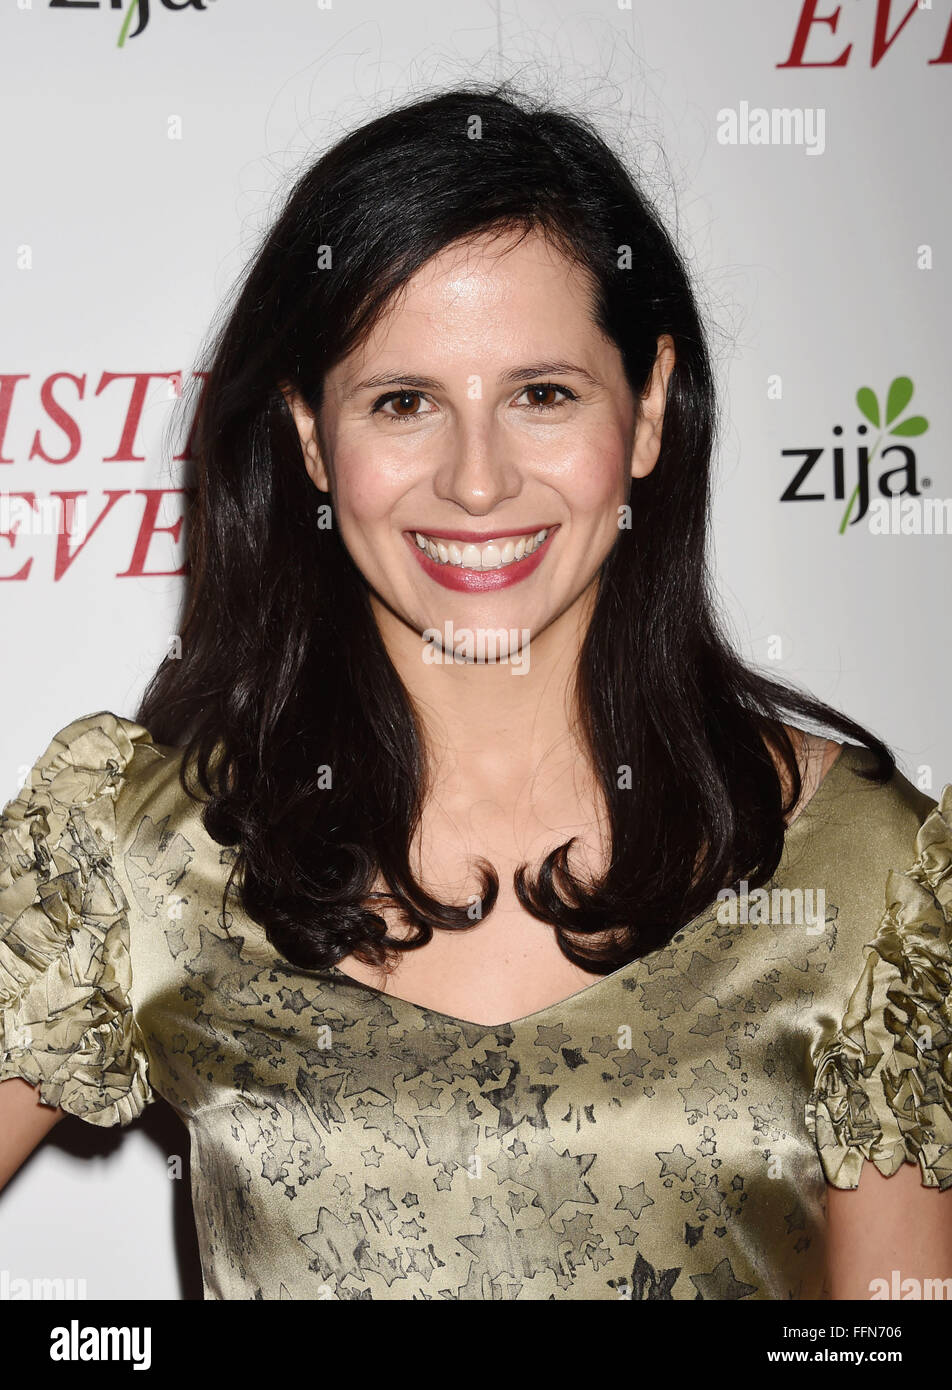 Actress Clara Perez arrives at the premiere of Unstuck's 'Christmas Eve' at the ArcLight Hollywood on - Stock Image